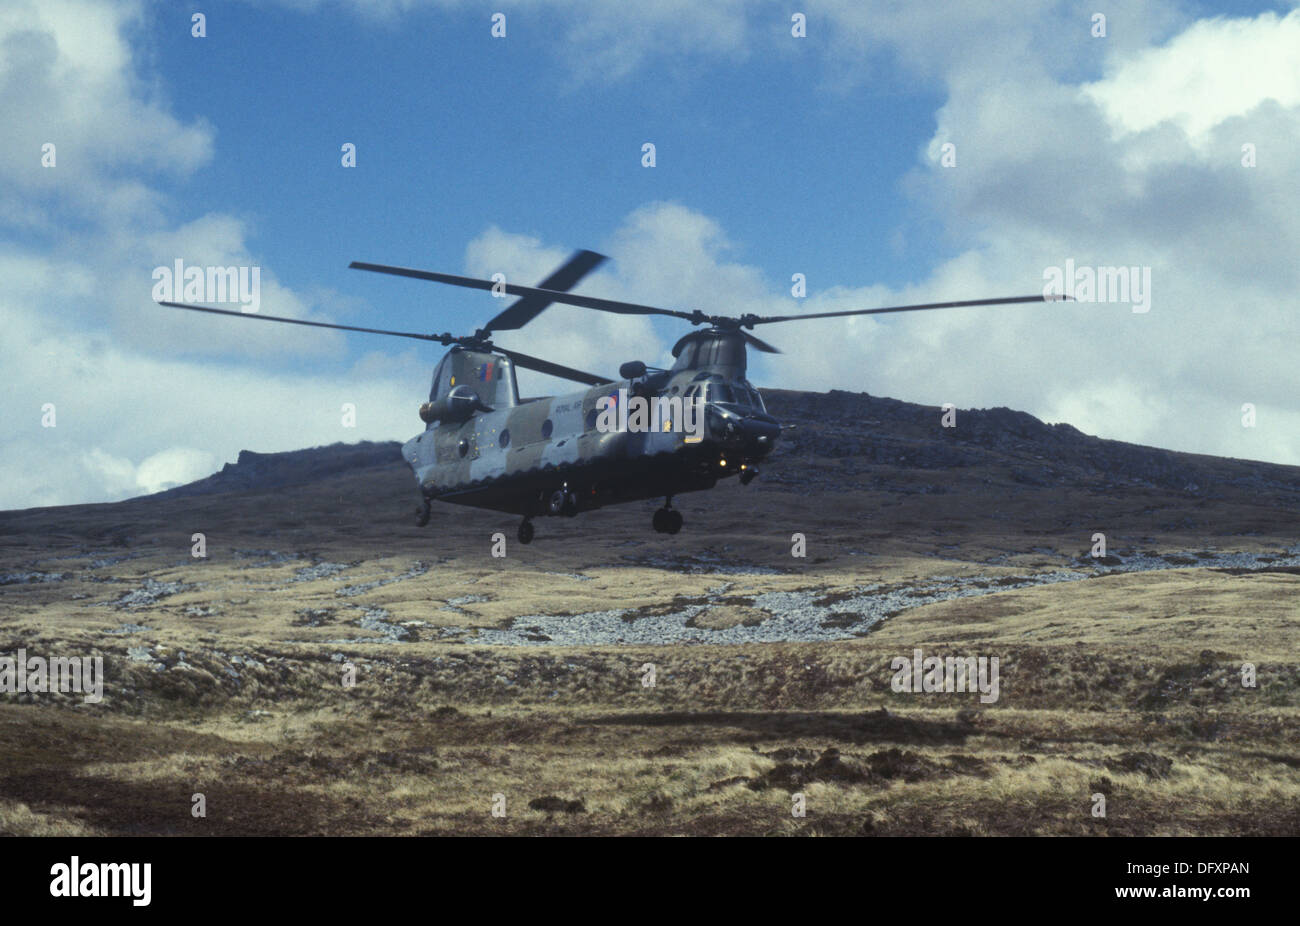 air force helicopter crash with Stock Photo An Raf Boeing Chinook Flying Low Over Onion Range In The Falkland 61439245 on 3 Army Officers Killed 1 Critical In Chopper Crash In West Bengal 1317727 additionally Memory Of Katunayake Airbase Attack furthermore U S Resume Osprey Refueling Training Okinawa Amidst  plaints in addition Looters Executed Do sk Strict Curfew Imposed Residents Fear Scale Government Assault additionally Unusual Airbus A400m Performance.